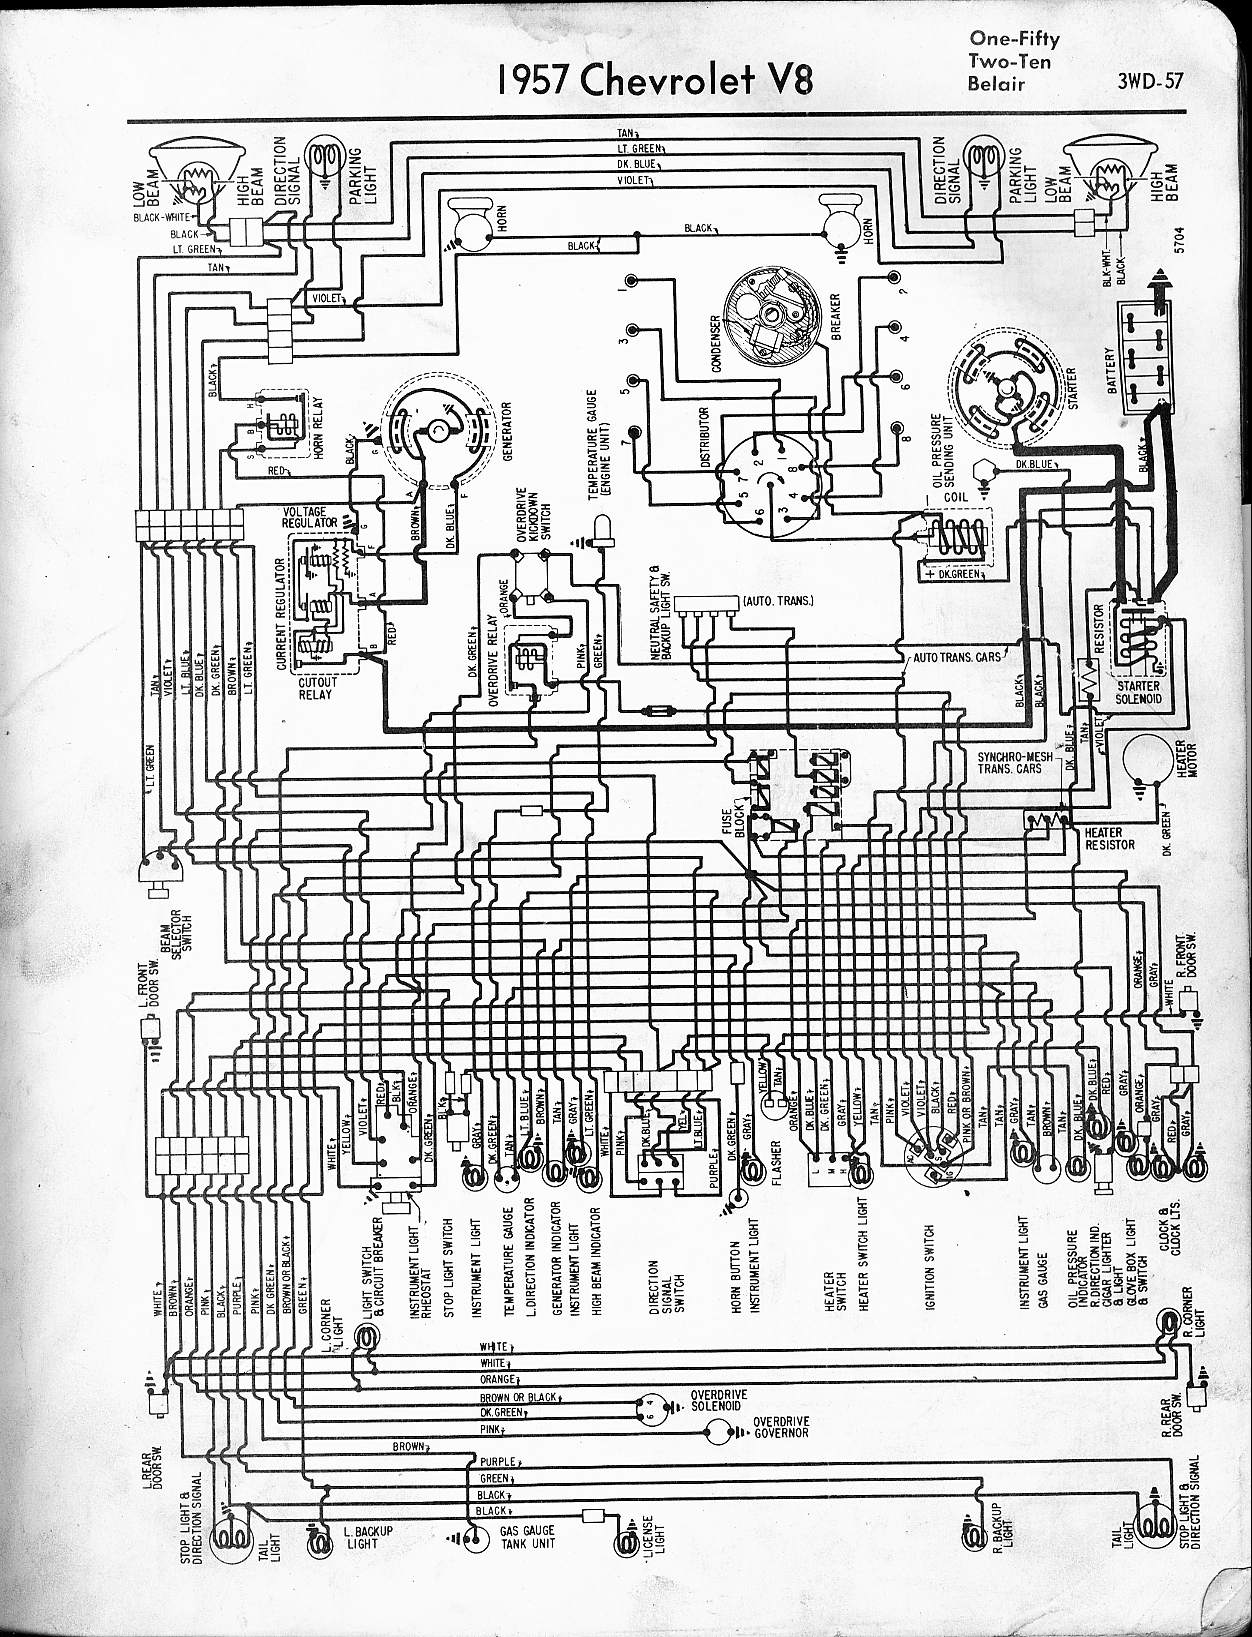 MWireChev57_3WD 057 1955 chevy wiring diagram 1955 pontiac wiring diagram \u2022 free 57 Chevy Wiring Diagram at gsmx.co